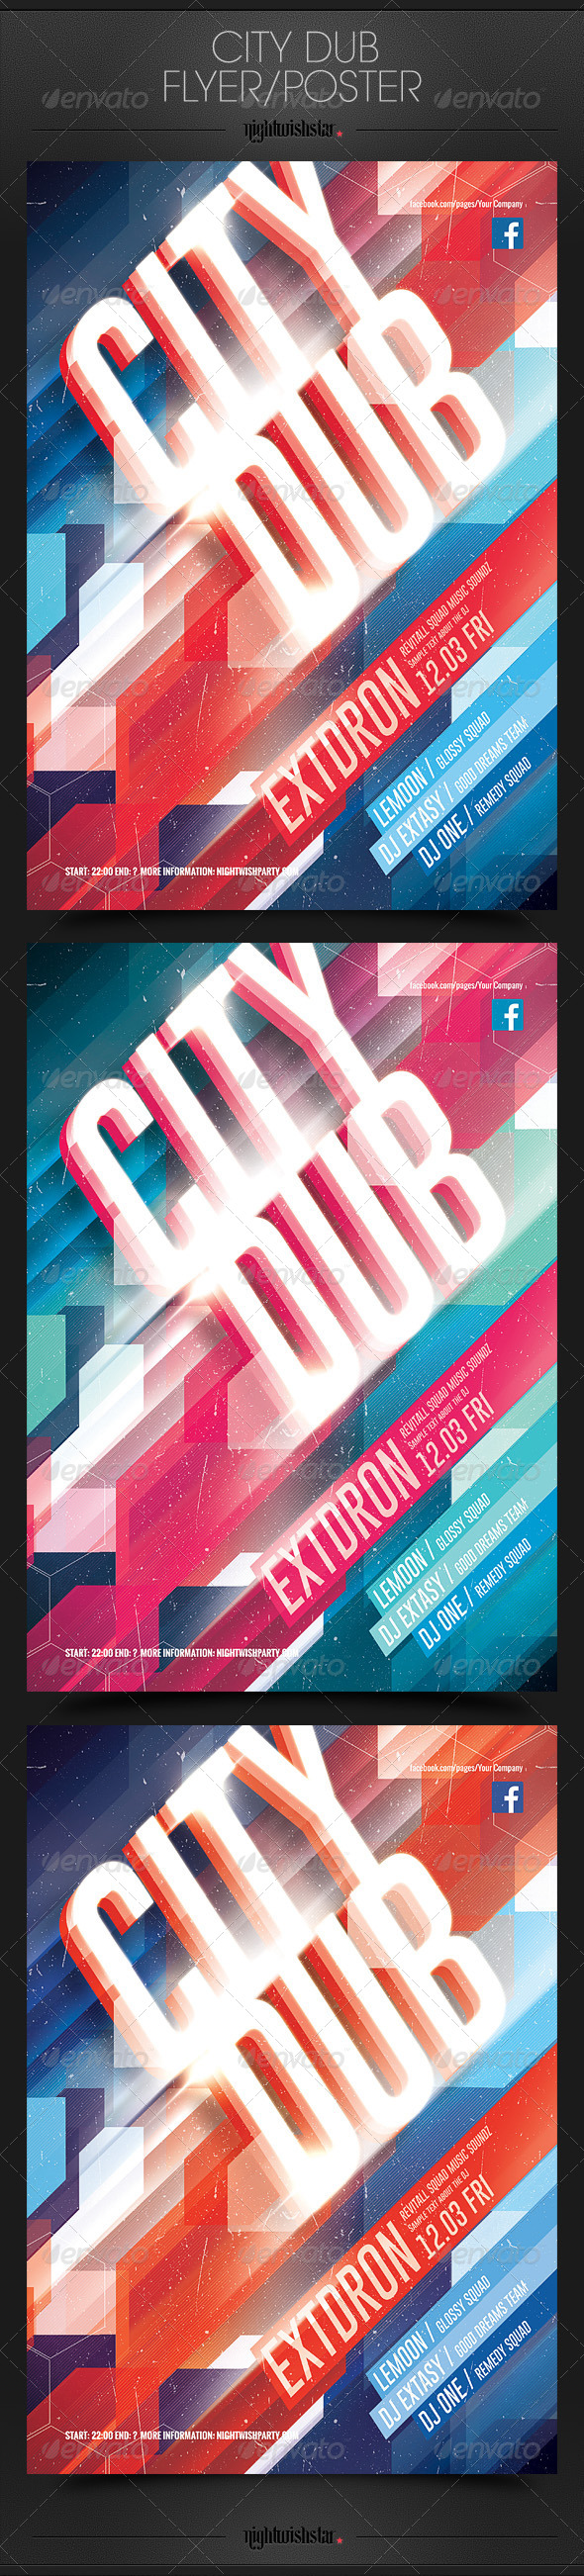 GraphicRiver City Dub Party Poster Flyer 6903667